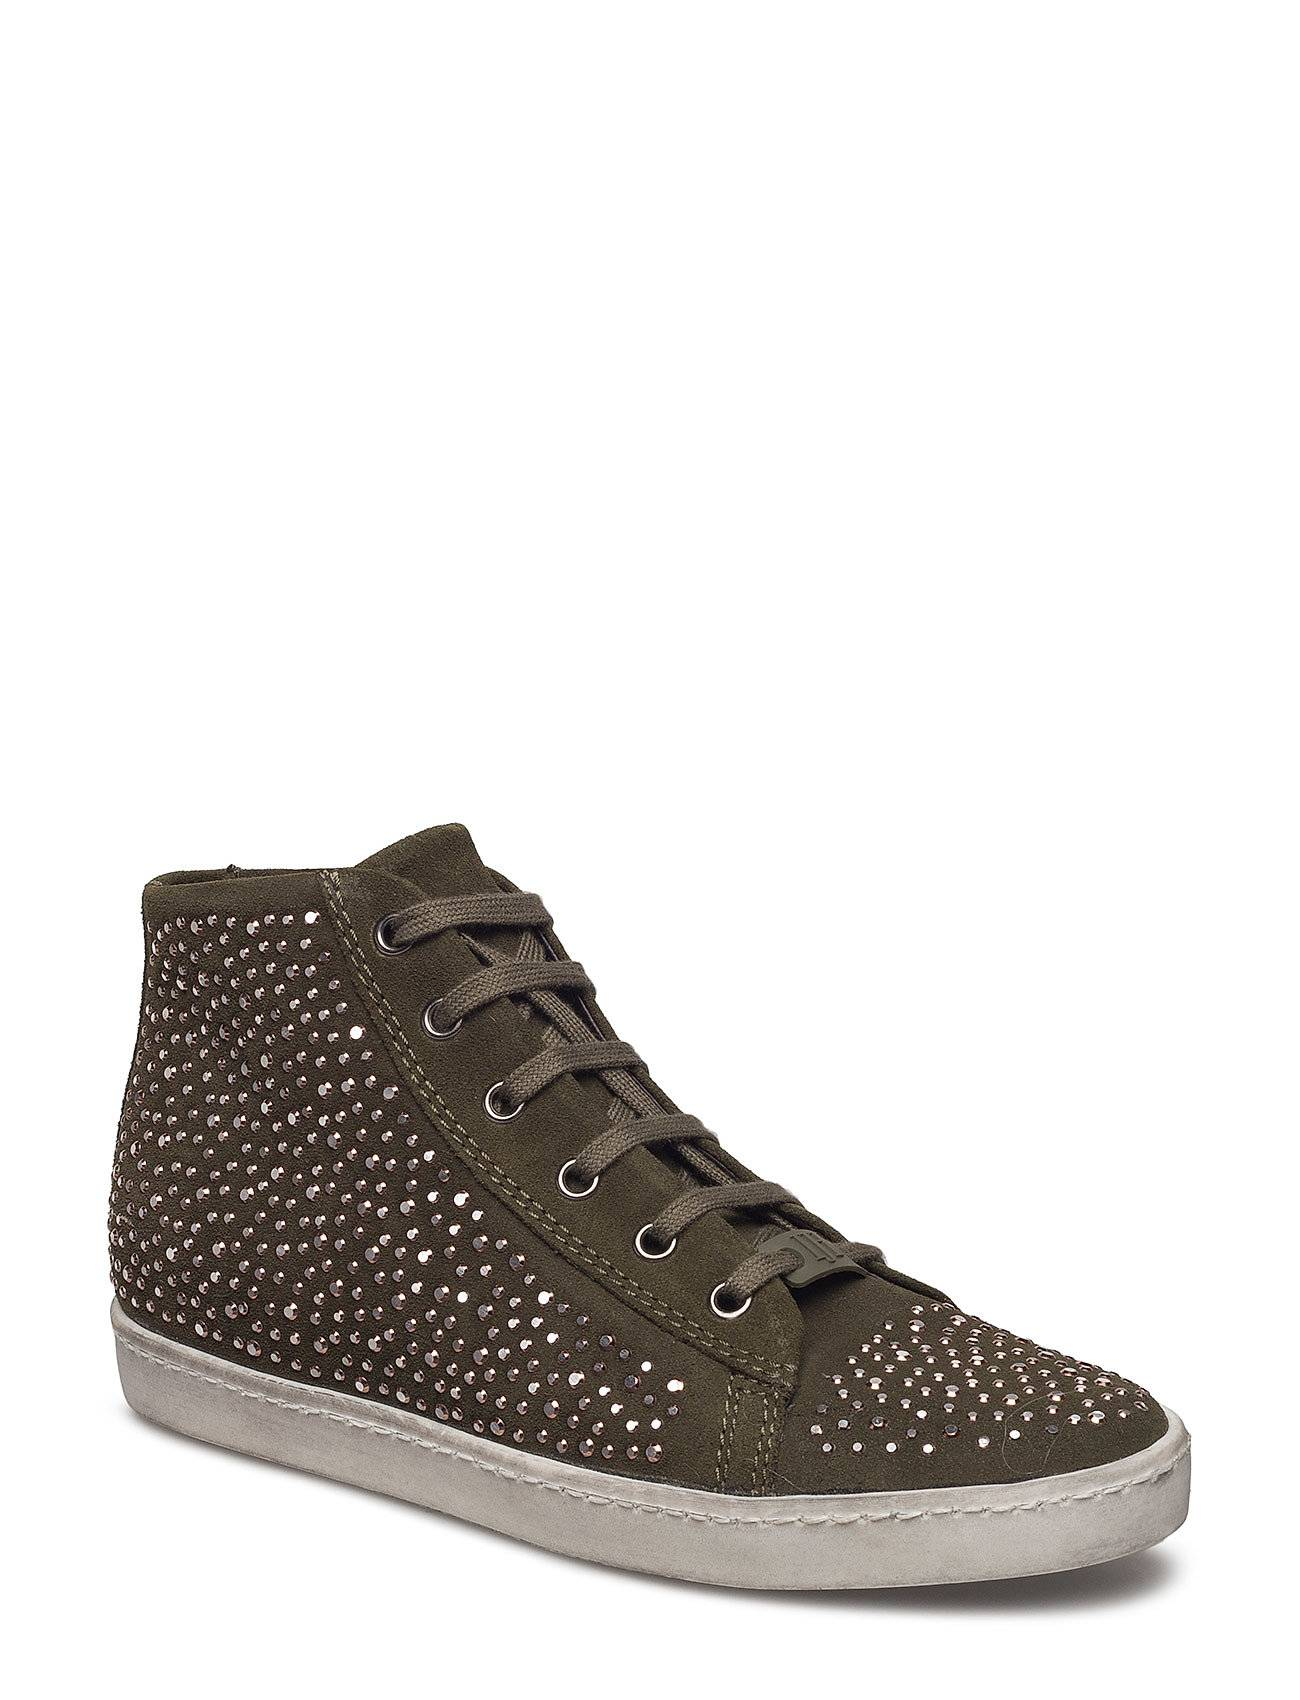 Ilse Jacobsen Sneaker High Top